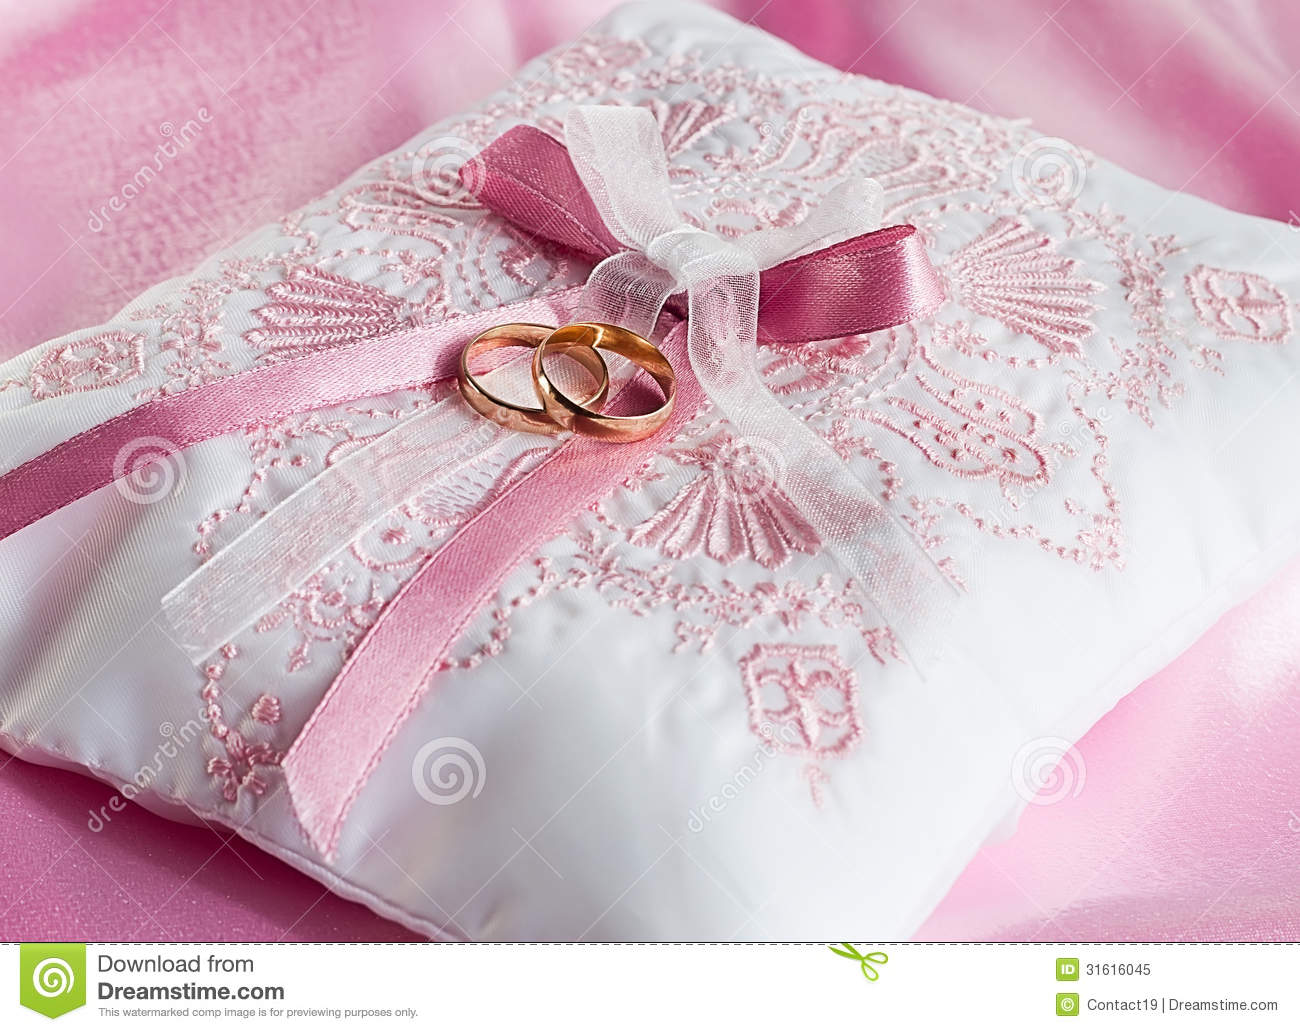 Wedding Gold Rings On A Pillow Stock Image - Image of decorative ...